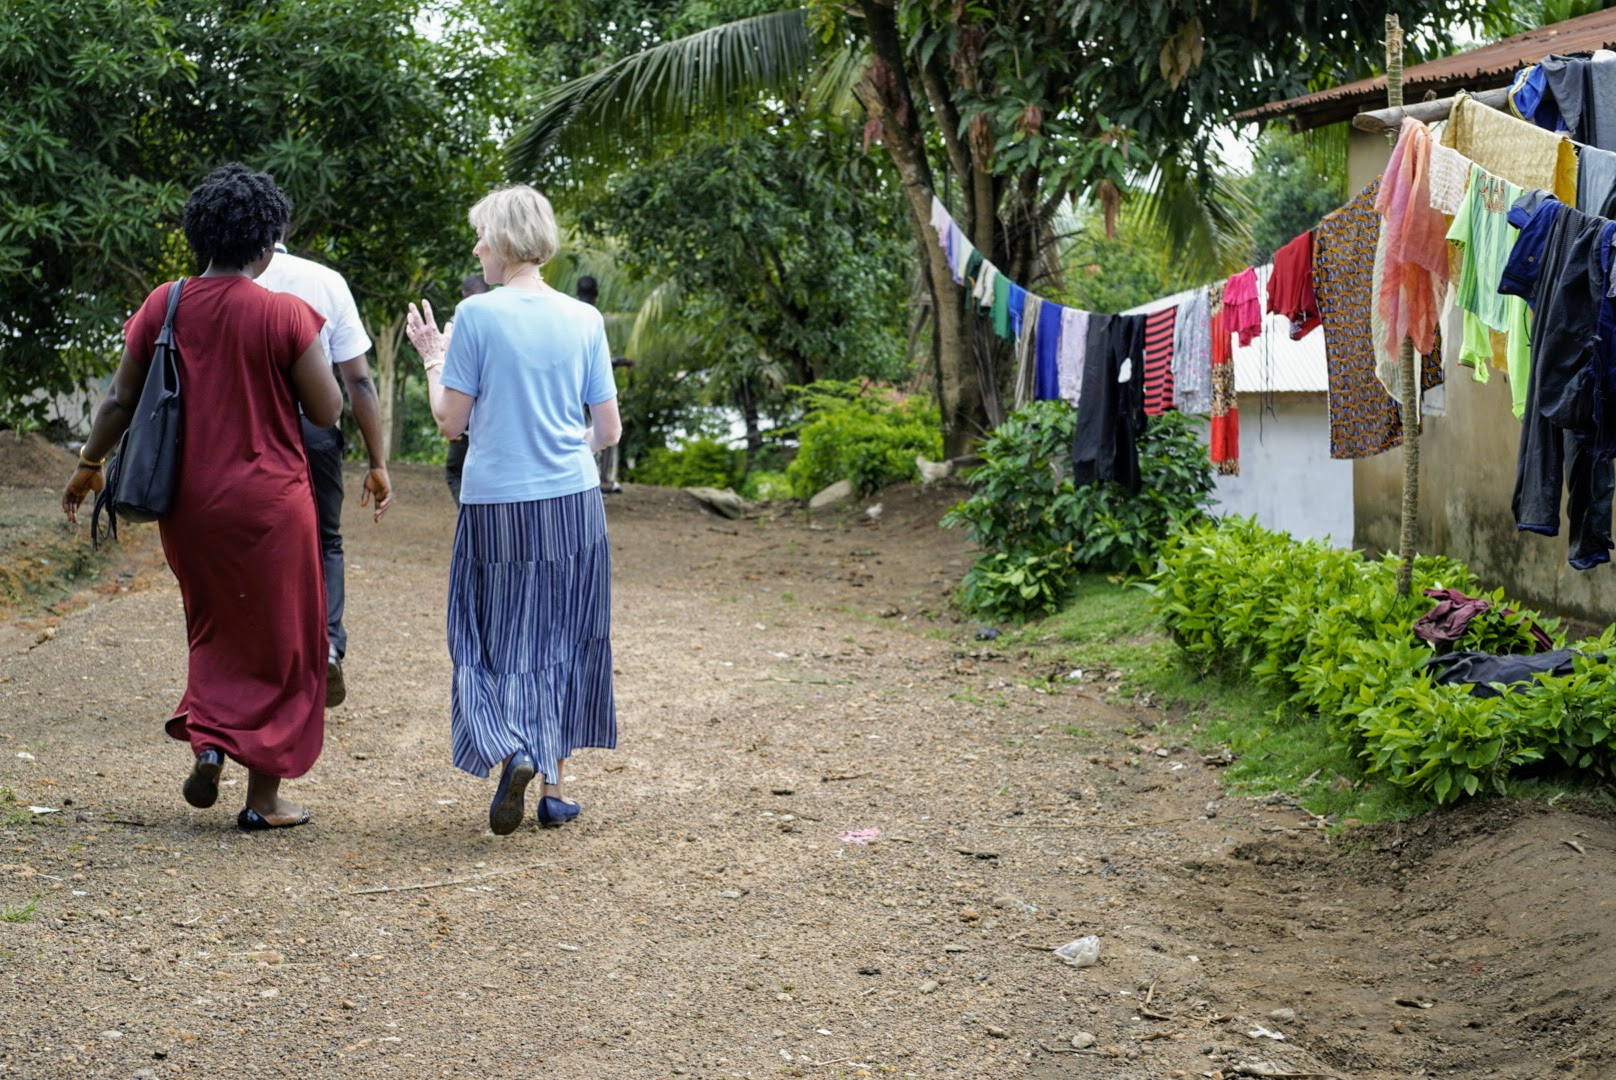 Sister Jean B. Bingham walks with another member in Sierra Leone during a recent 11-day trip from June 5 through June 16, 2019, to the West African country.